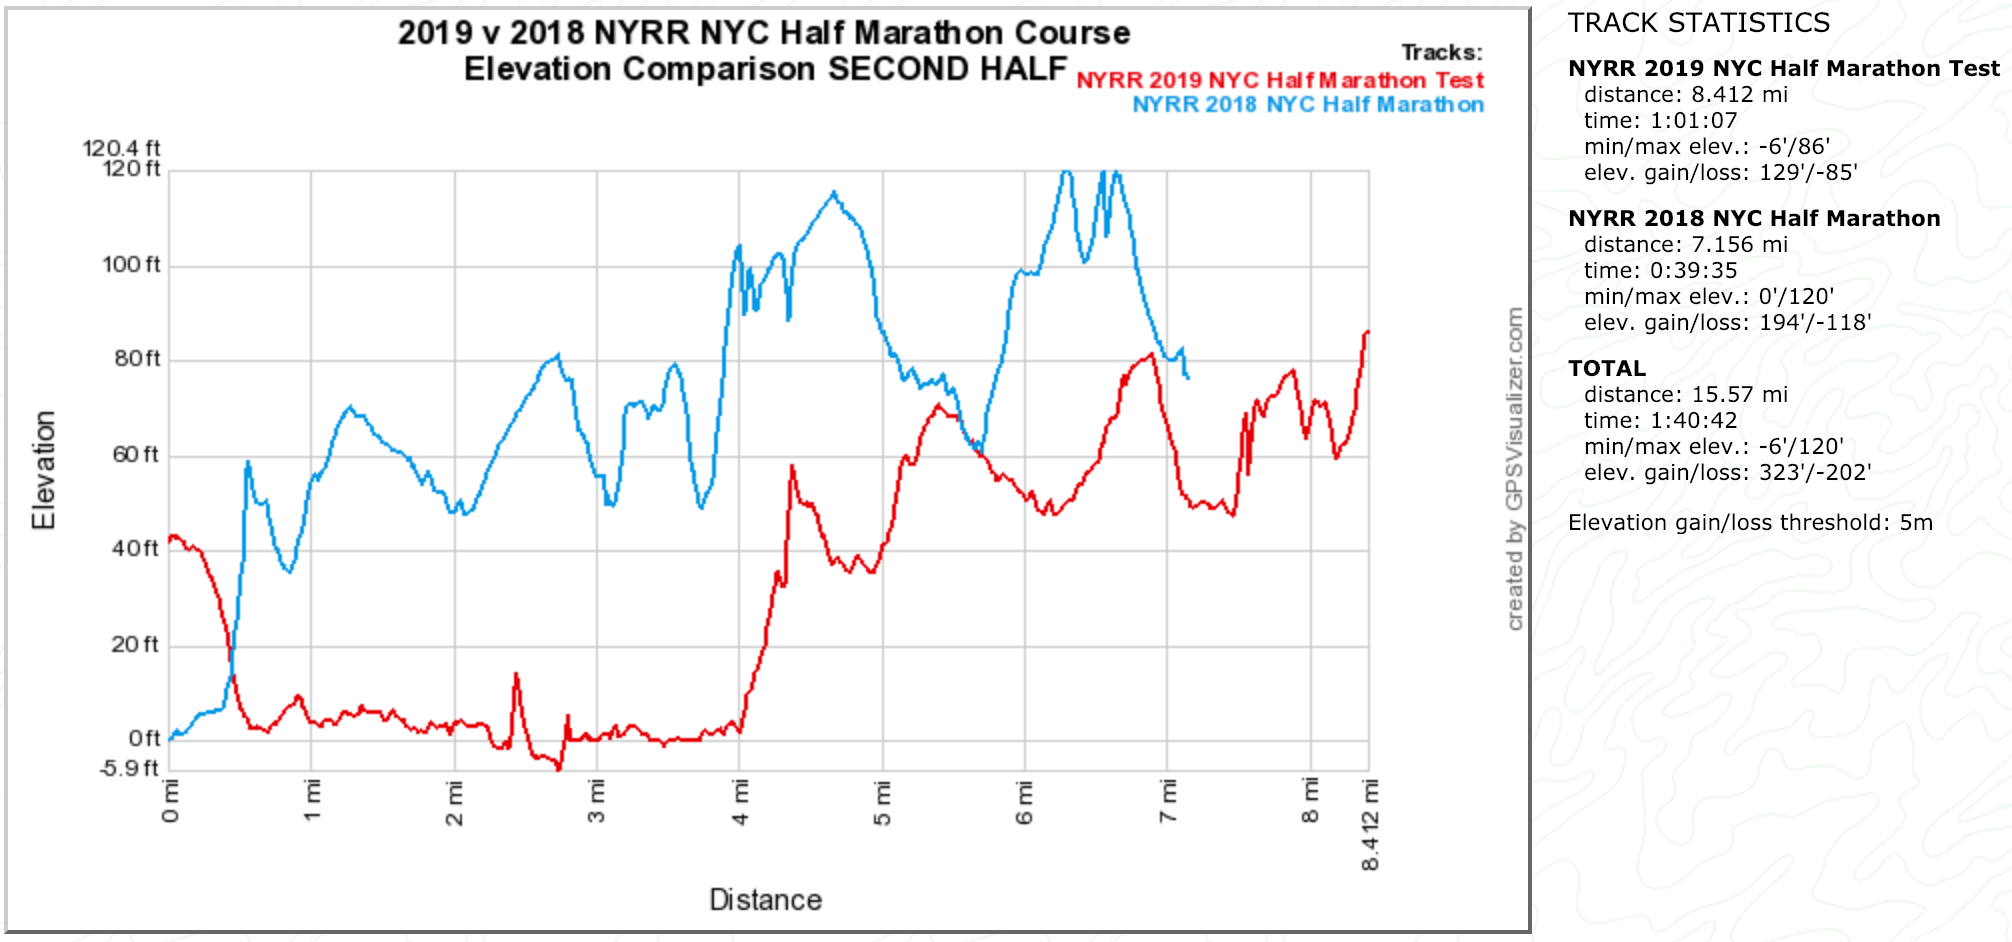 2019 v 2018 NYC Half Marathon Course Elevation Comparison Second Half